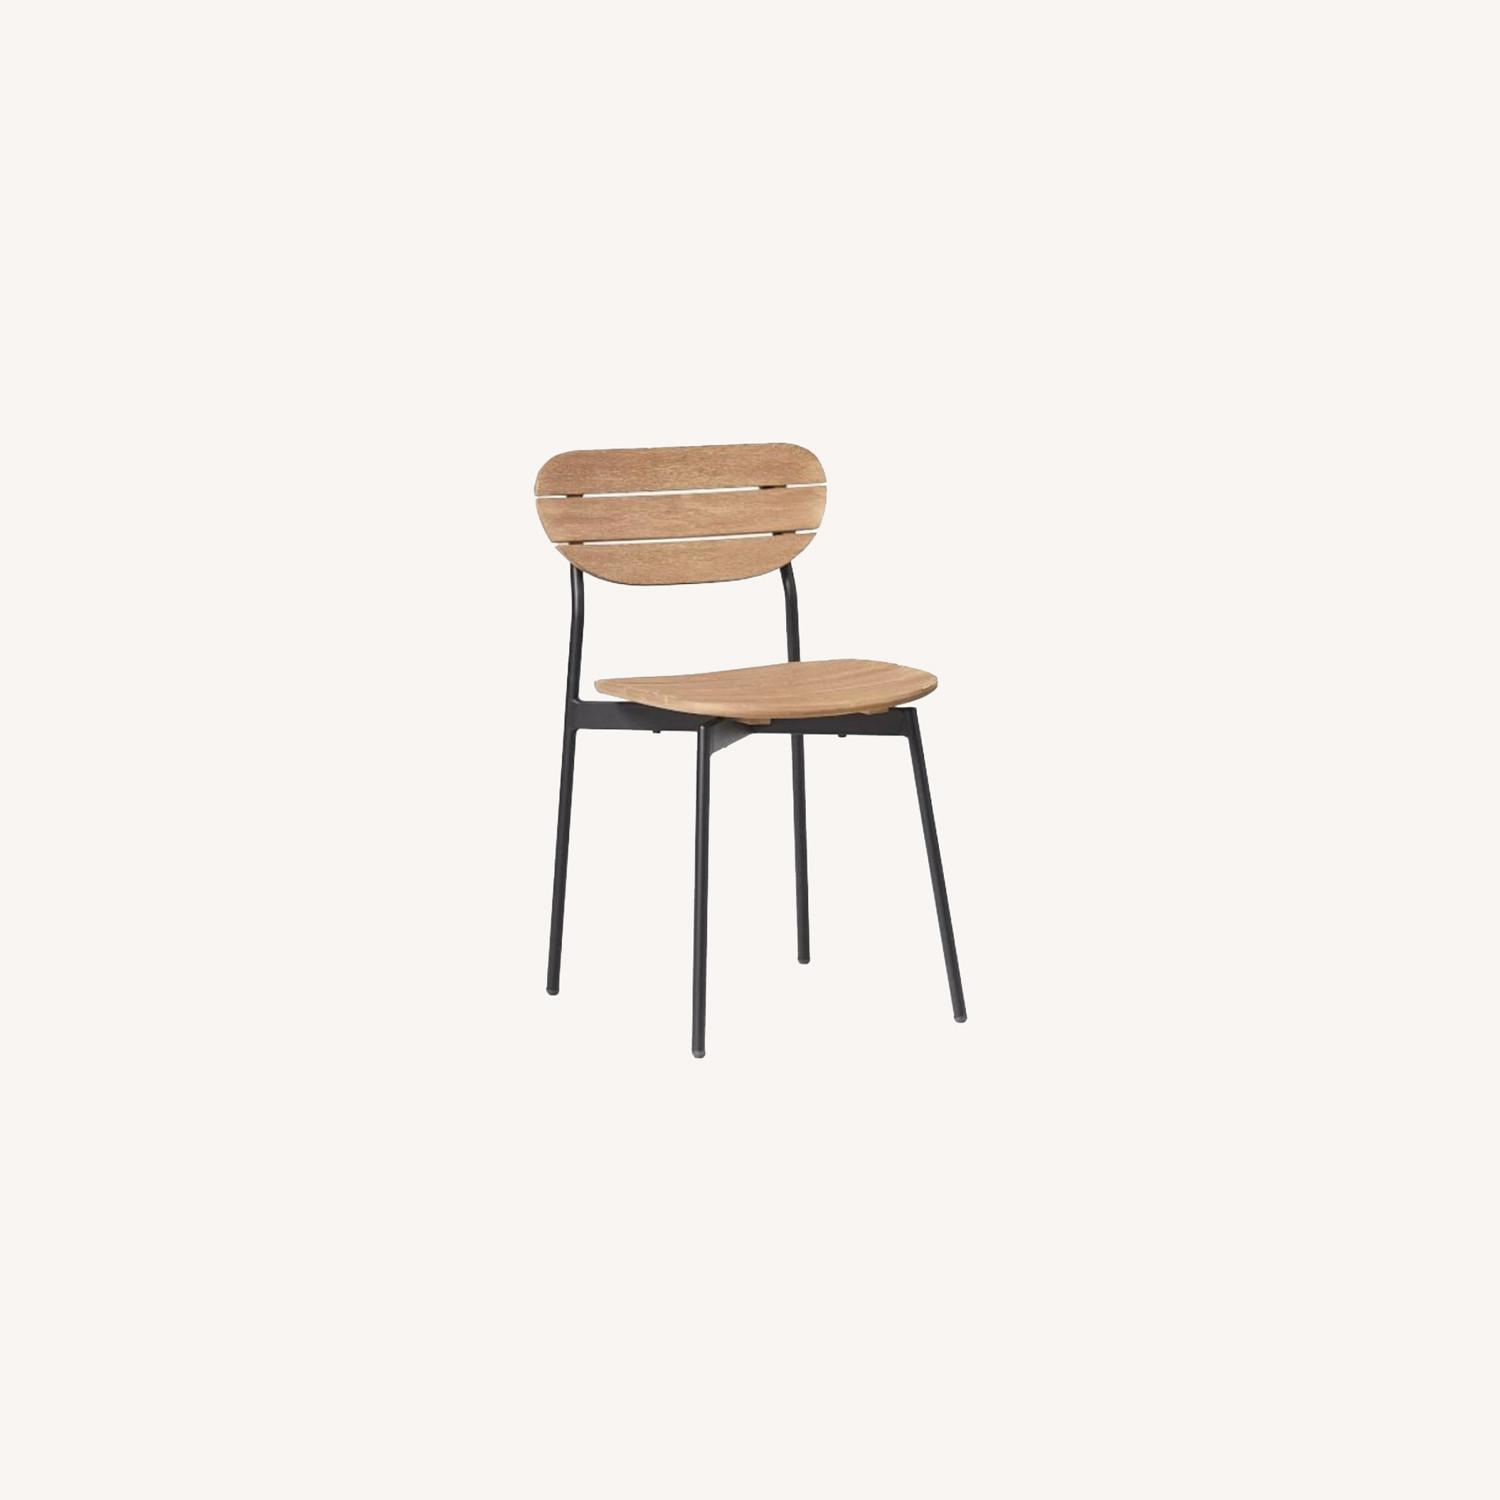 West Elm Frame Outdoor Set of 2 Dining Chairs - image-0